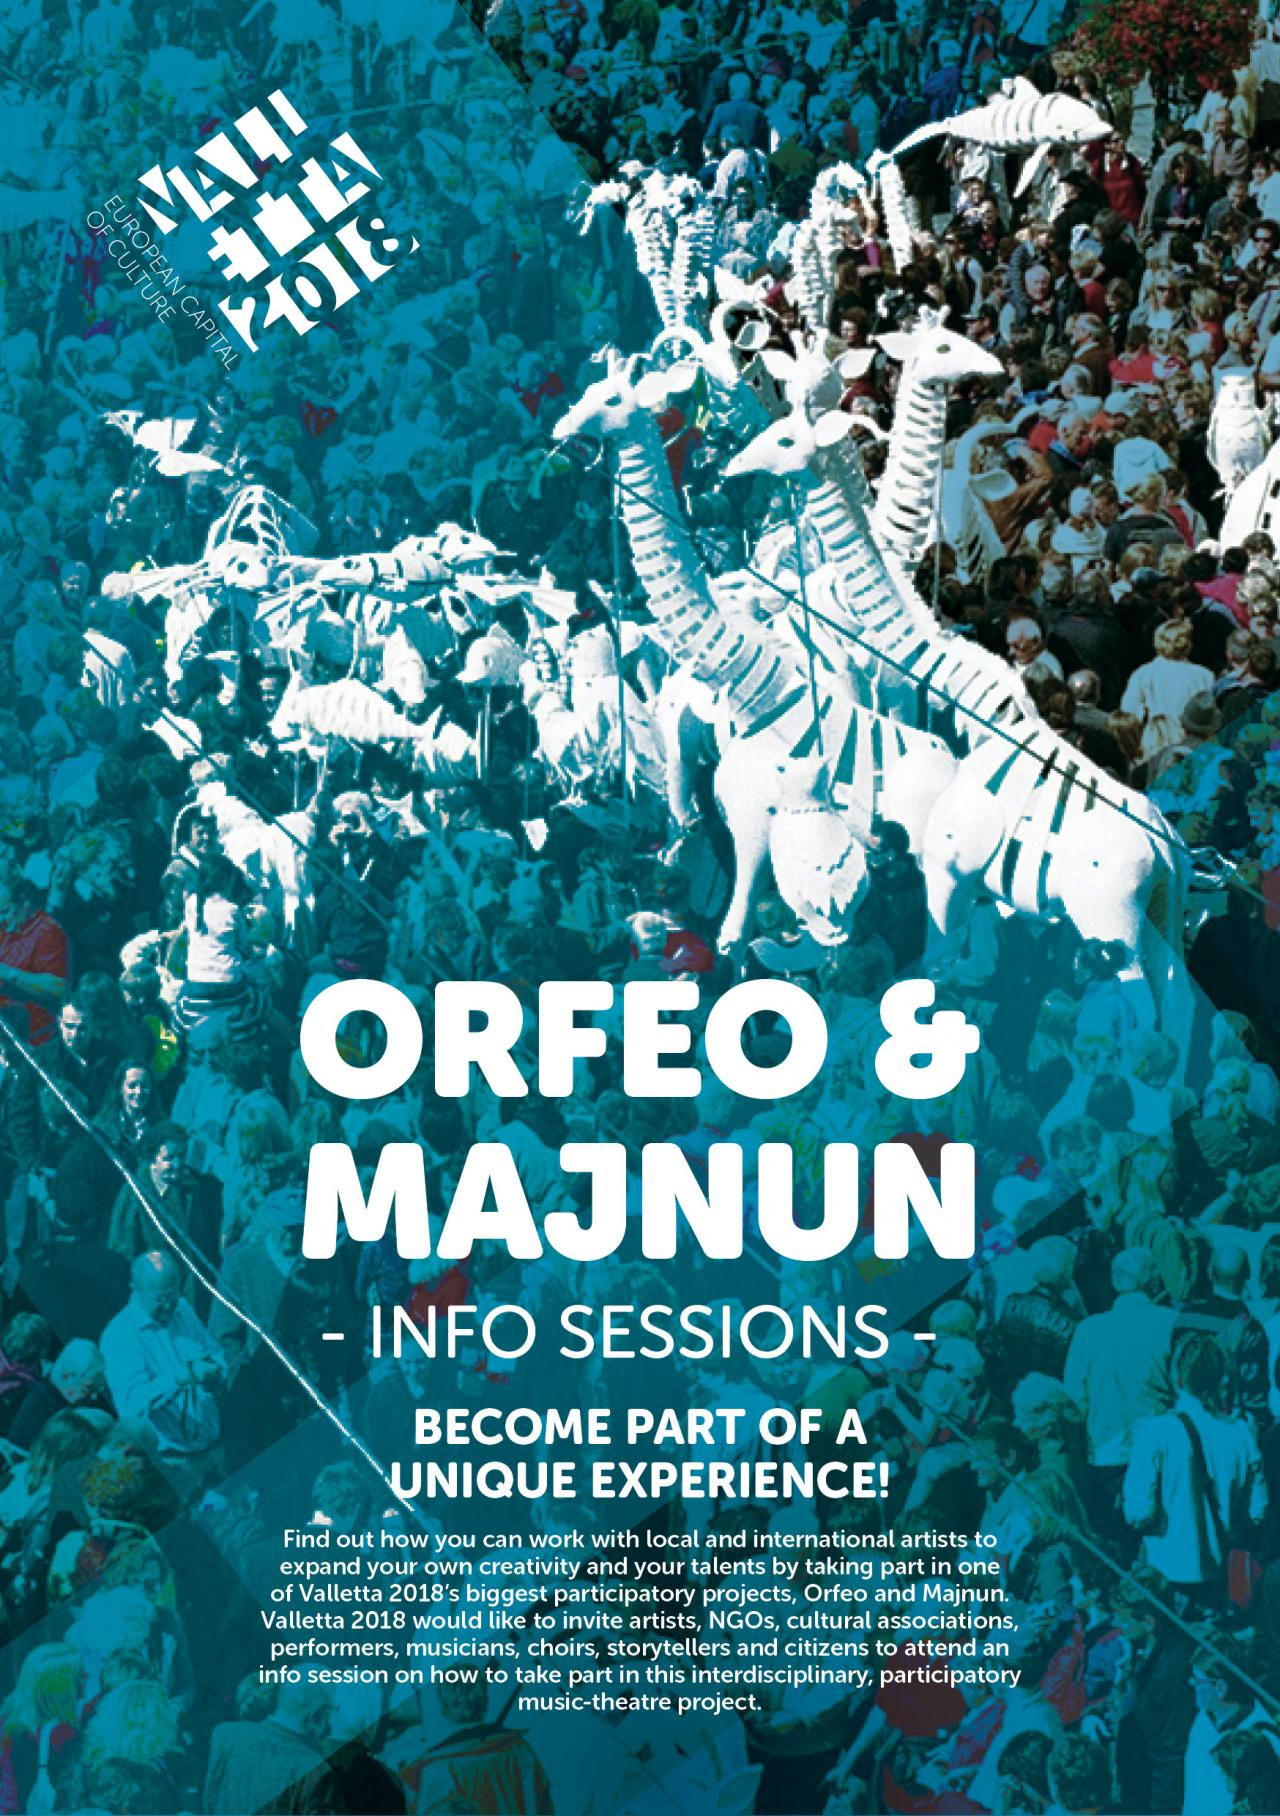 Orfeo and Majnun - an interdisciplinary, participatory music-theatre project